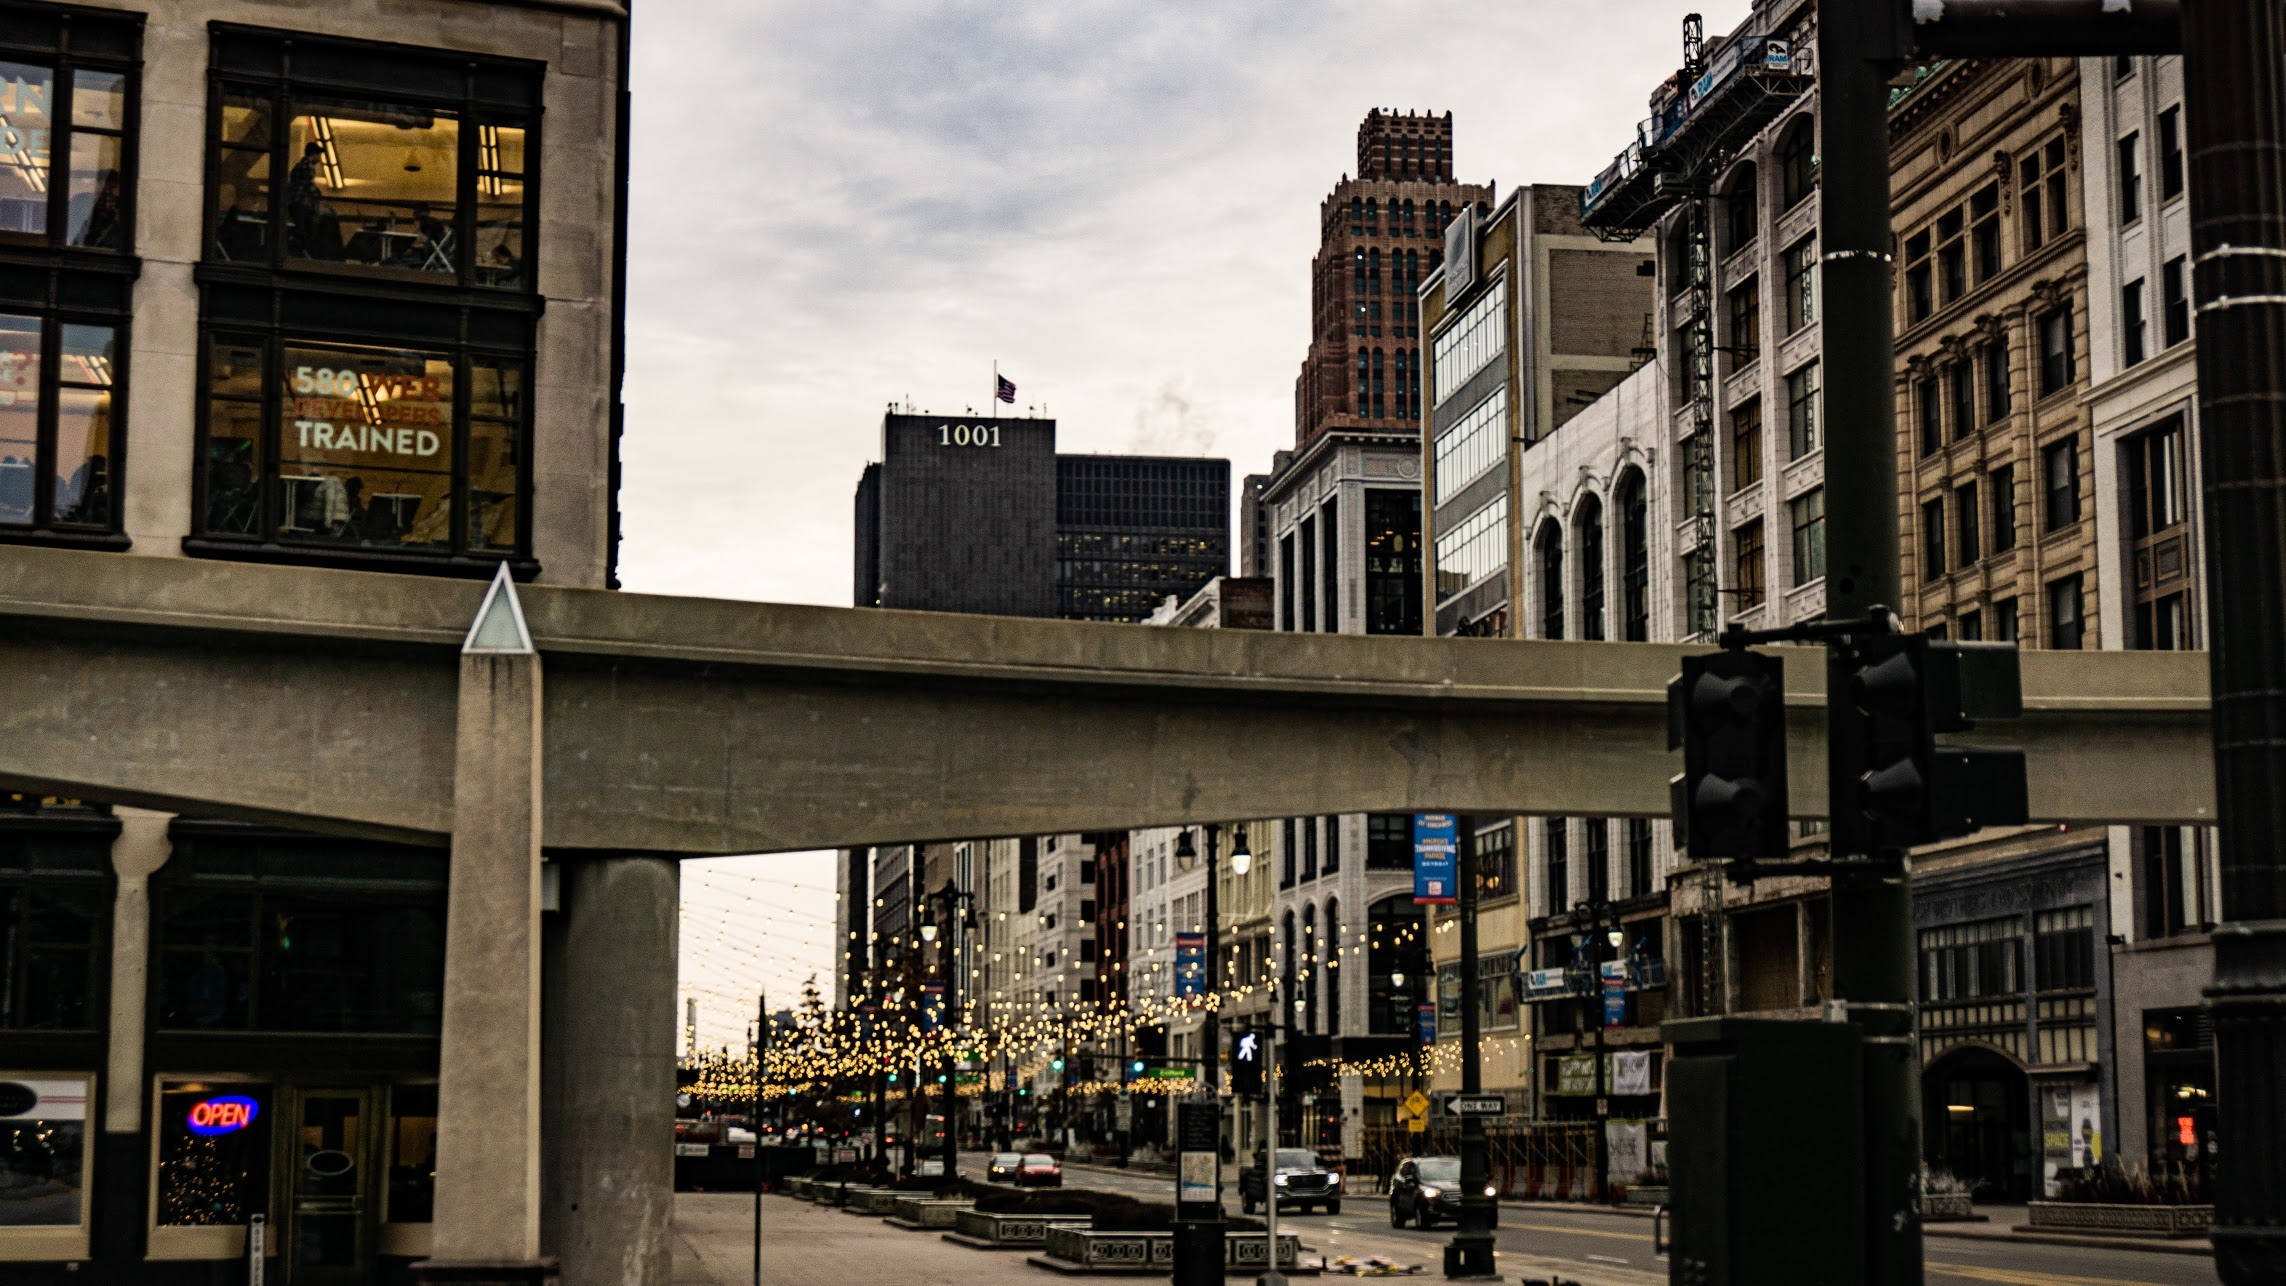 Amsterdam St & Woodward Ave, Detroit. Photo Karhlyle Fletcher